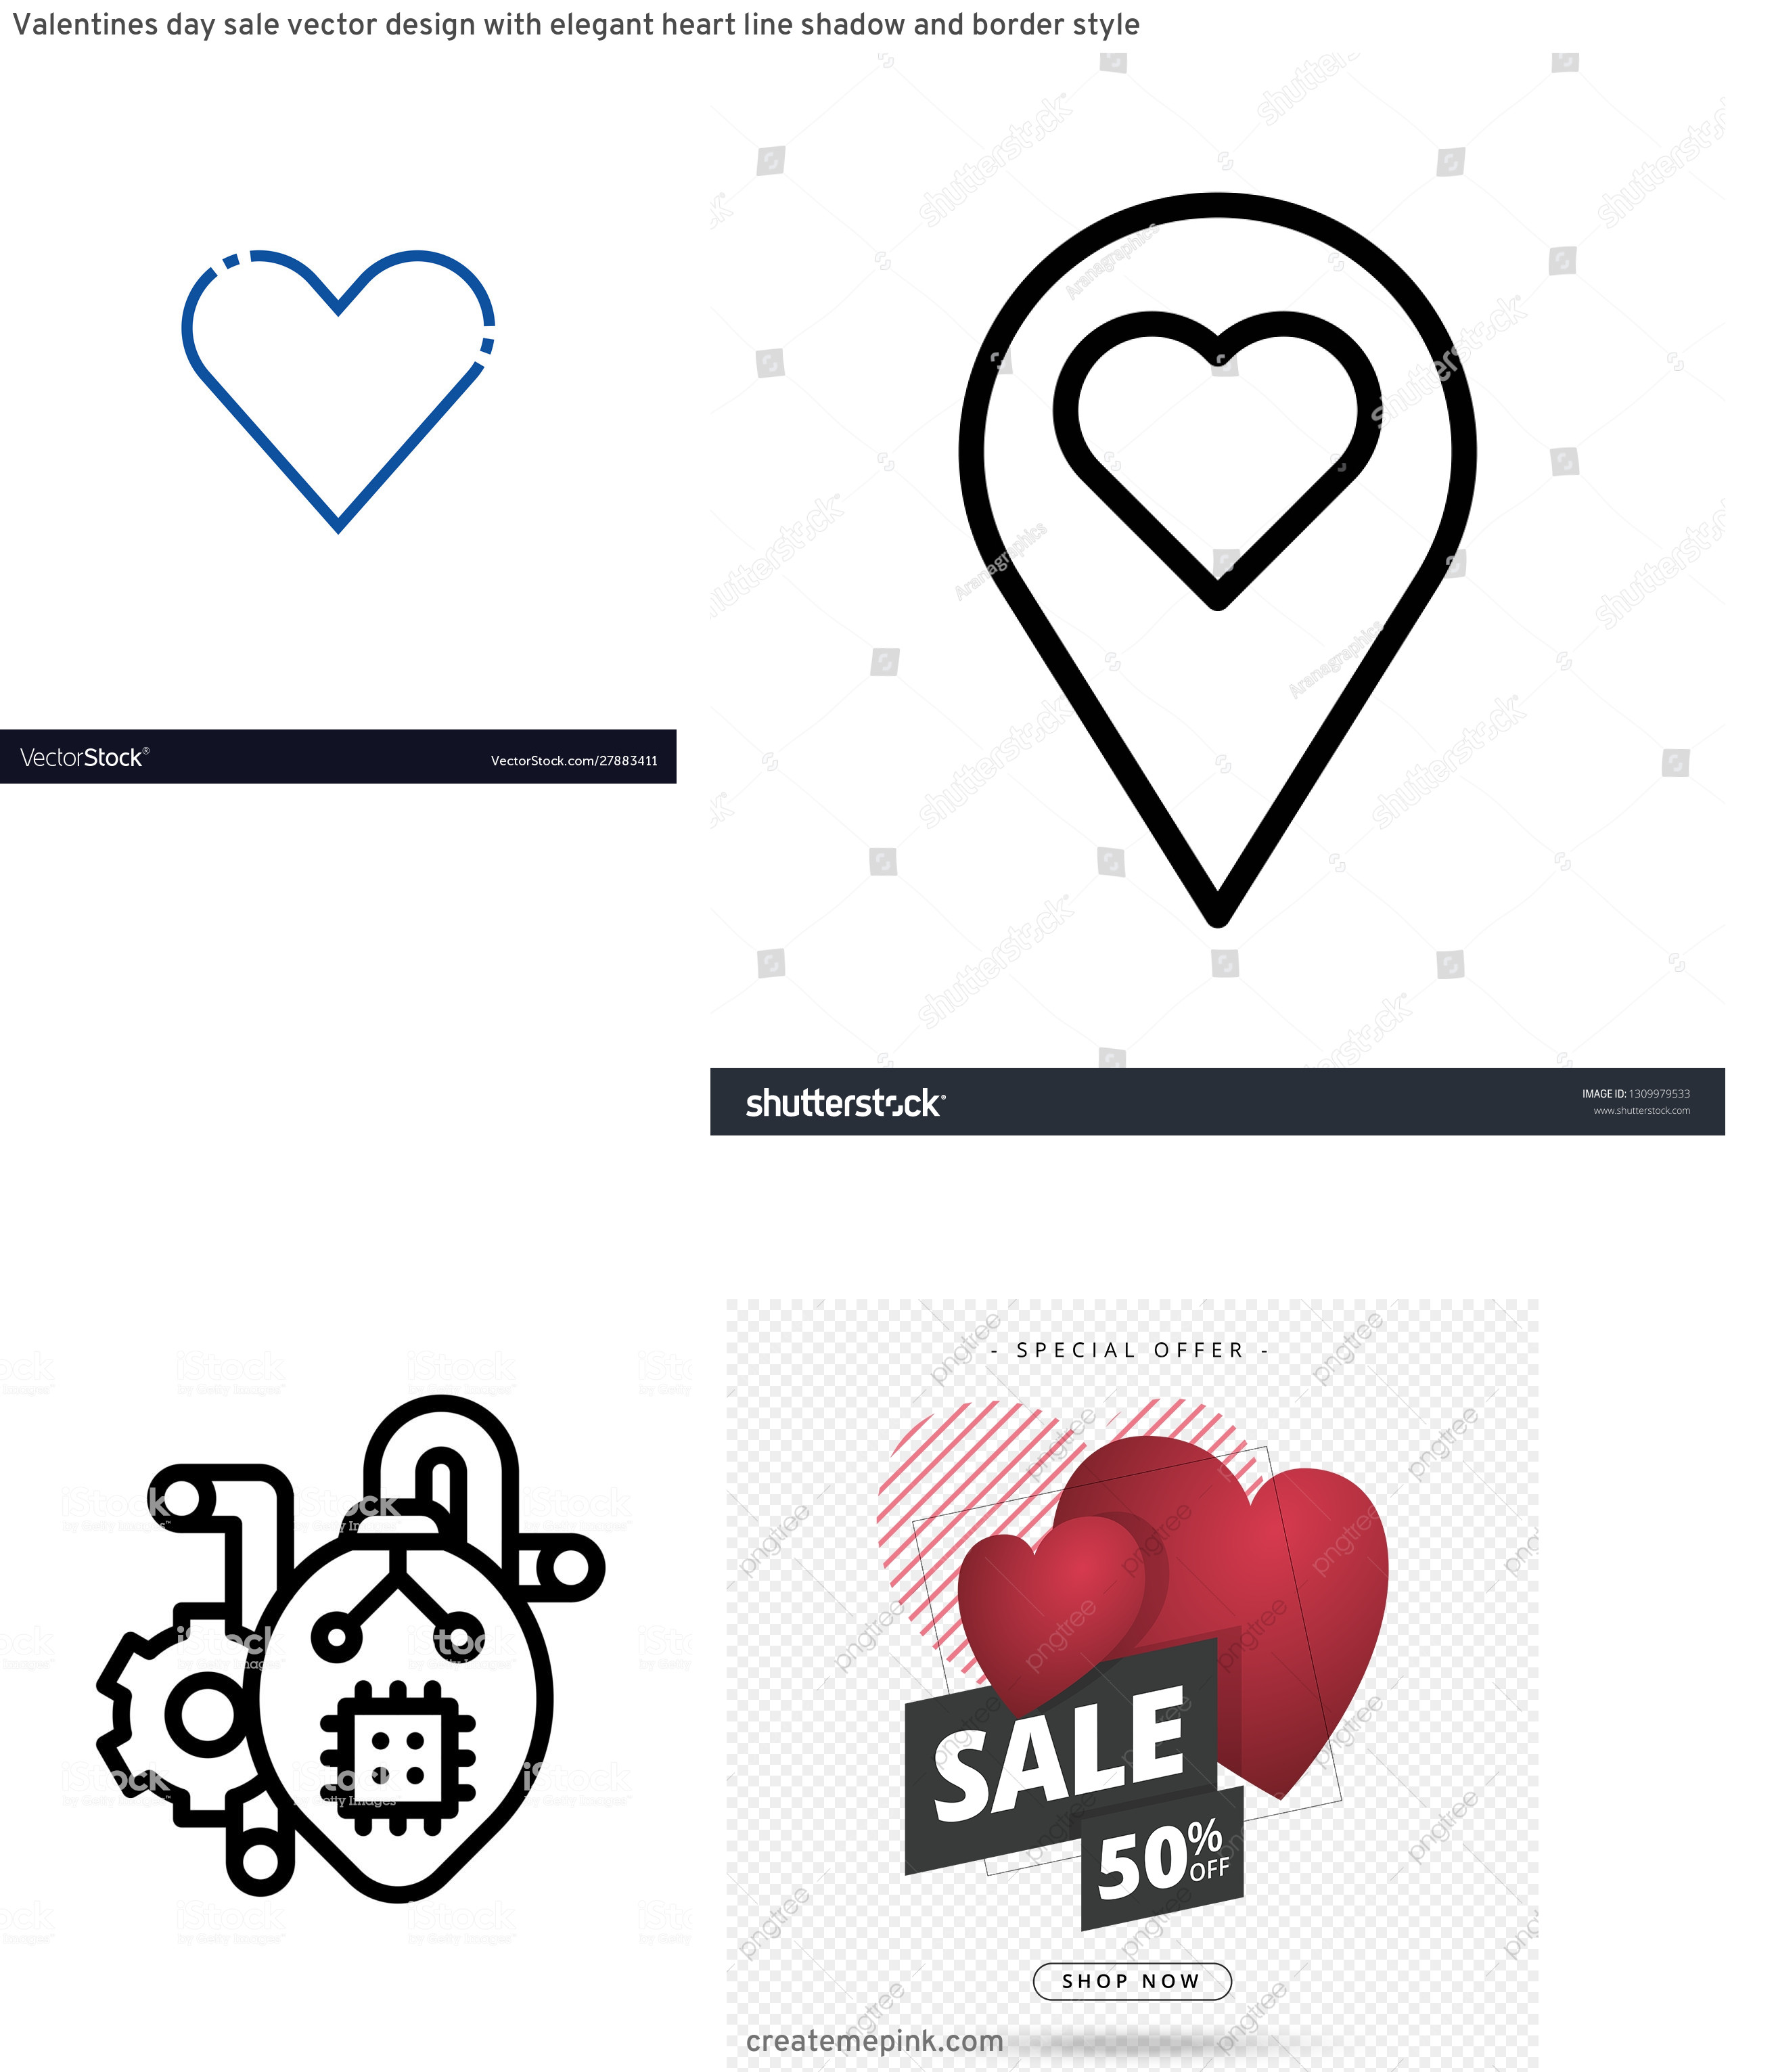 Heart Vector Line Designs: Valentines Day Sale Vector Design With Elegant Heart Line Shadow And Border Style